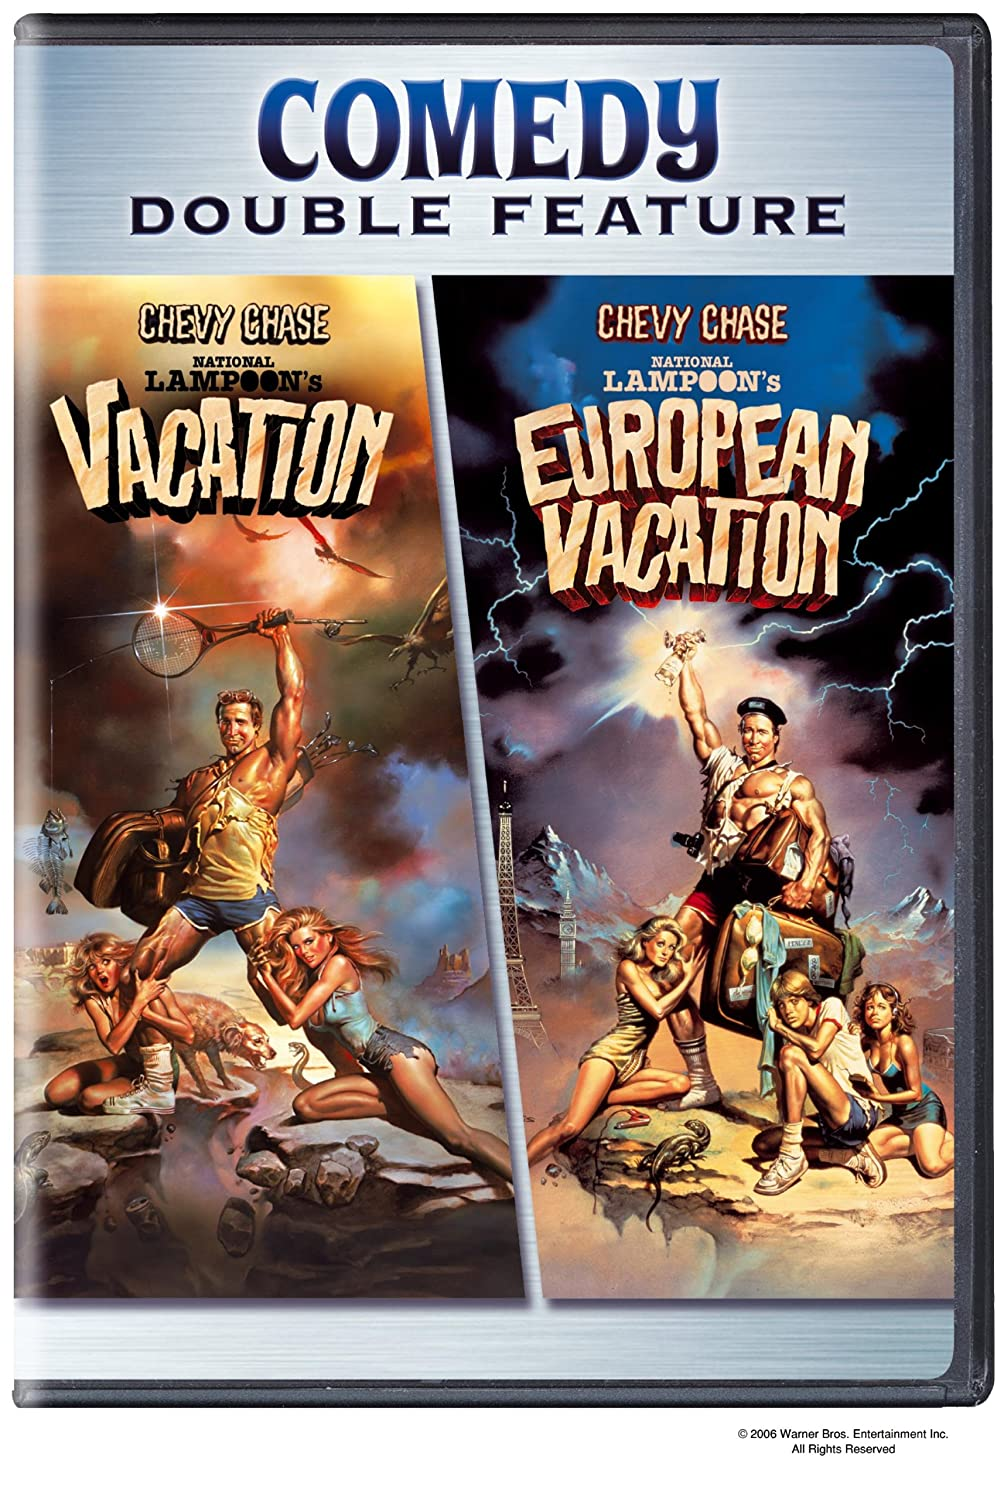 Amazoncom Comedy Double Feature National Lampoons Vacation - European vacation